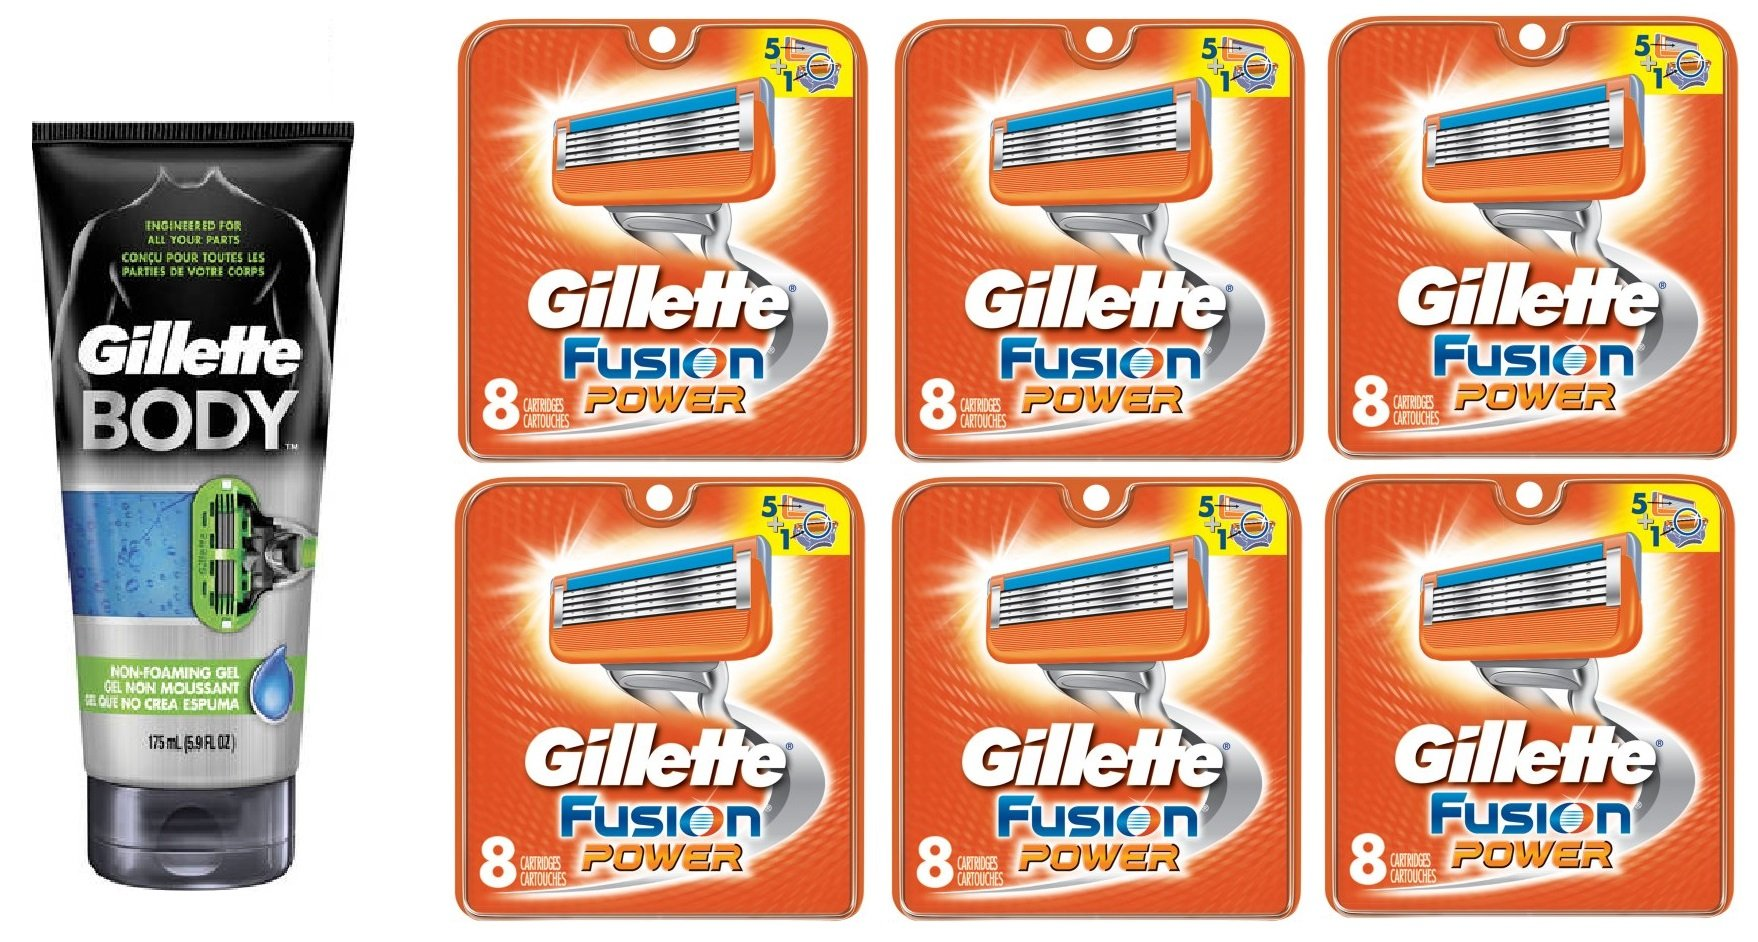 Gillette Body Non Foaming Shave Gel for Men, 5.9 Fl Oz + Fusion Power Refill Blades 8 Ct (6 Pack) + FREE Luxury Luffa Loofah Bath Sponge On A Rope, Color May Vary